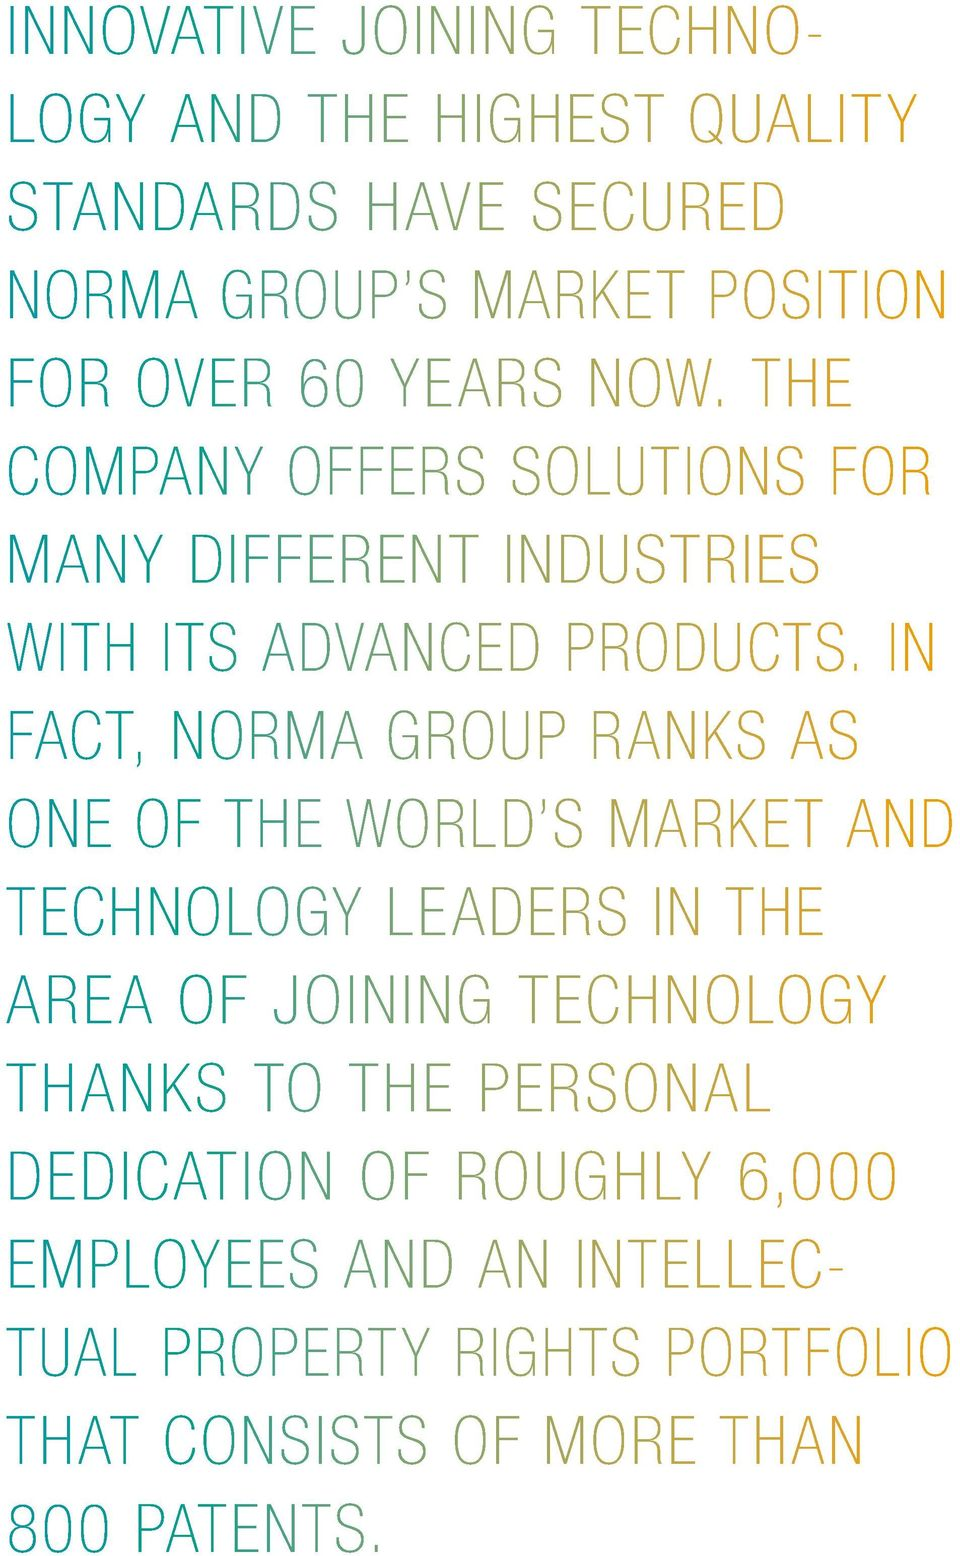 IN FACT, NORMA GROUP RANKS AS ONE OF THE WORLD S MARKET AND TECHNOLOGY LEADERS IN THE AREA OF JOINING TECHNOLOGY THANKS